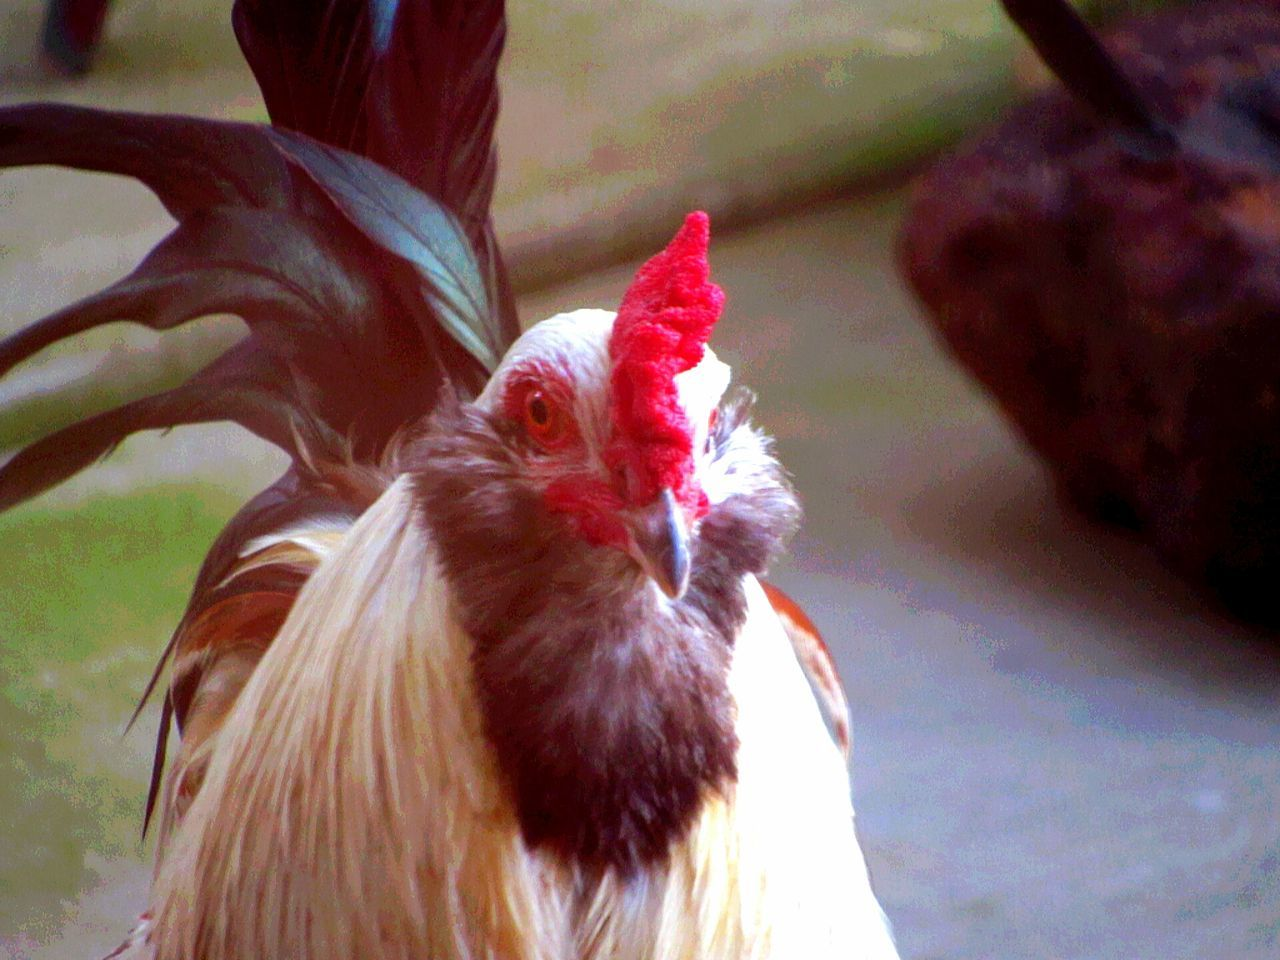 animal themes, one animal, chicken - bird, domestic animals, bird, livestock, no people, animal crest, outdoors, day, rooster, close-up, nature, mammal